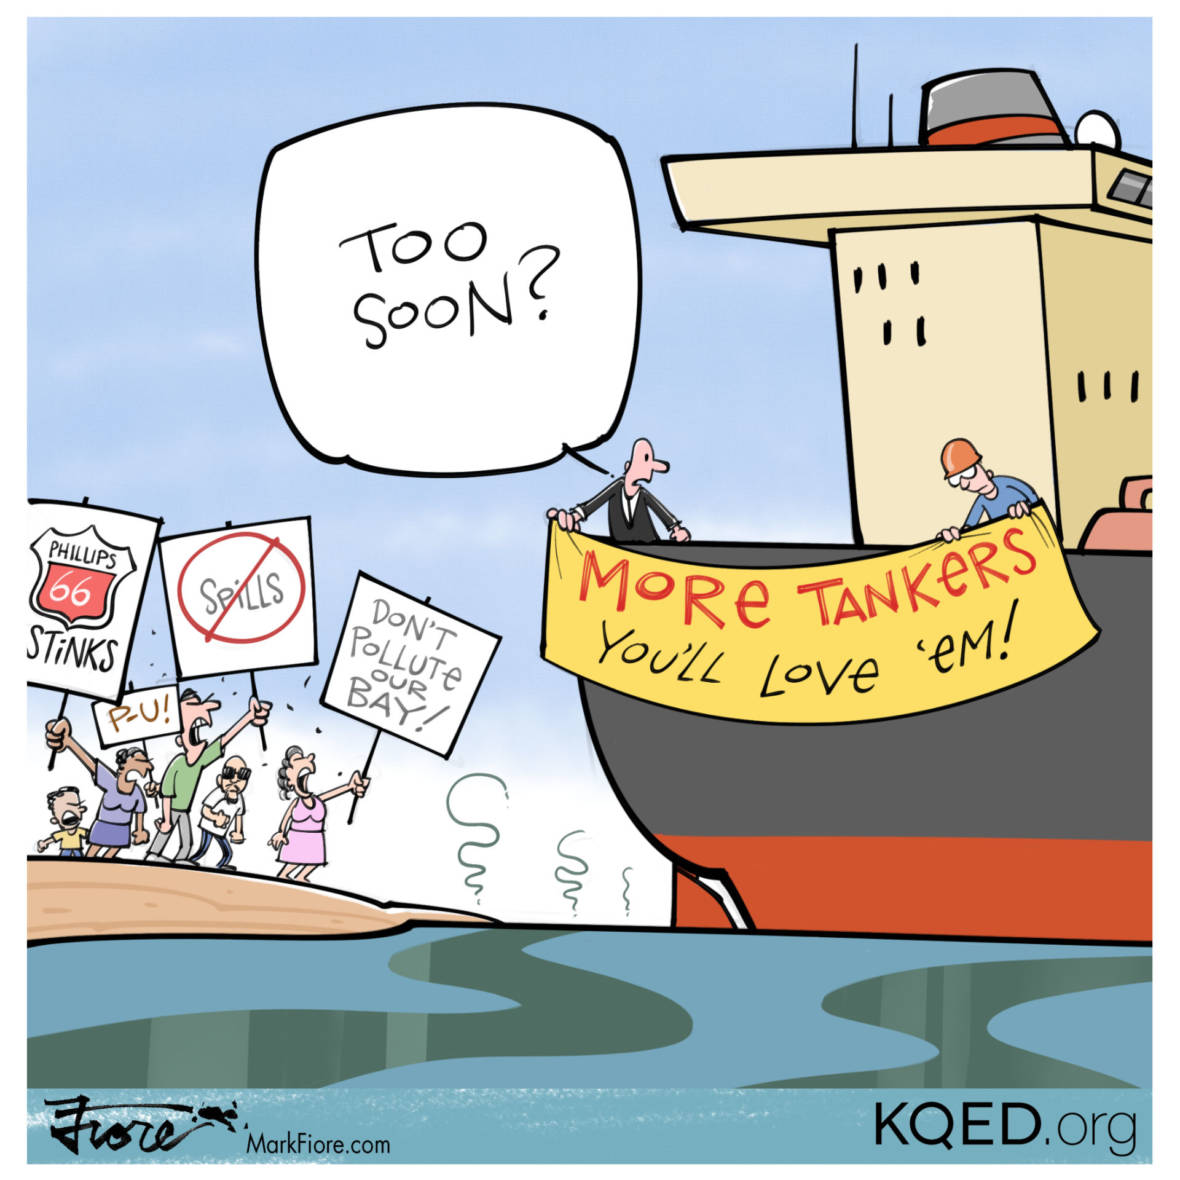 Too Soon by Mark Fiore